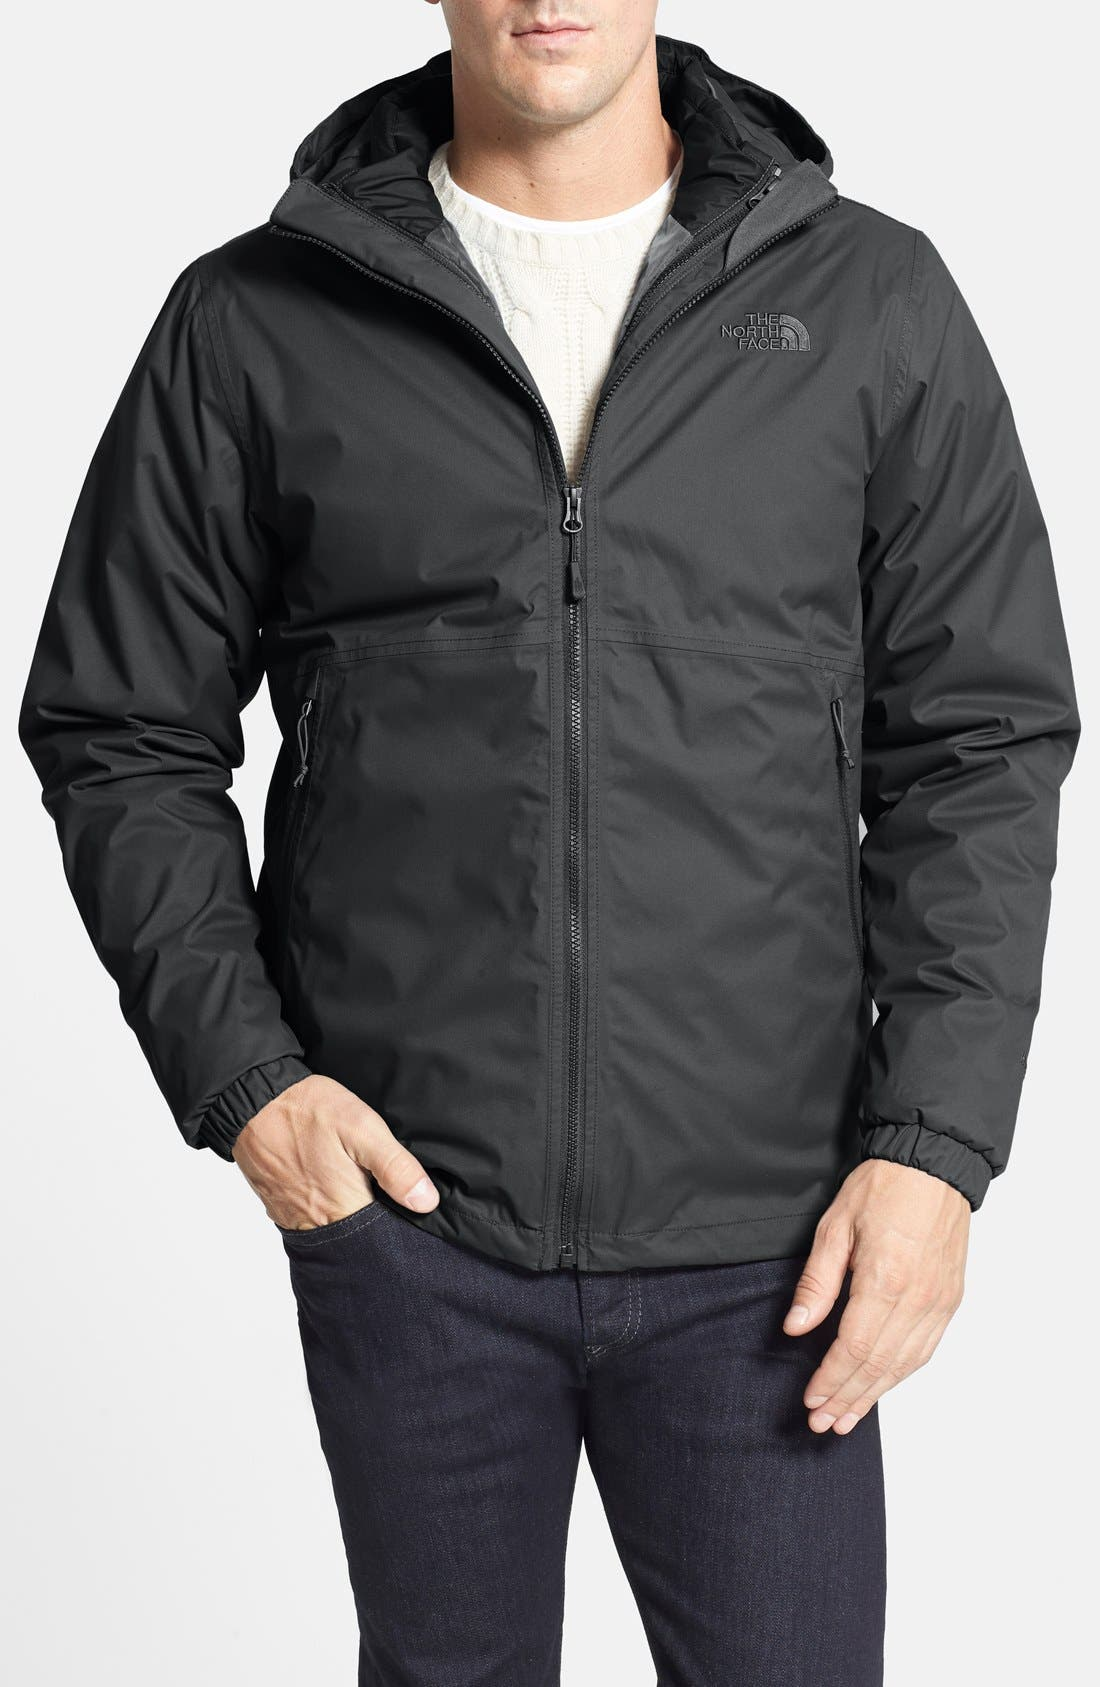 Alternate Image 1 Selected - The North Face 'All About' TriClimate® Waterproof Hooded 3-in-1 HyVent® Jacket